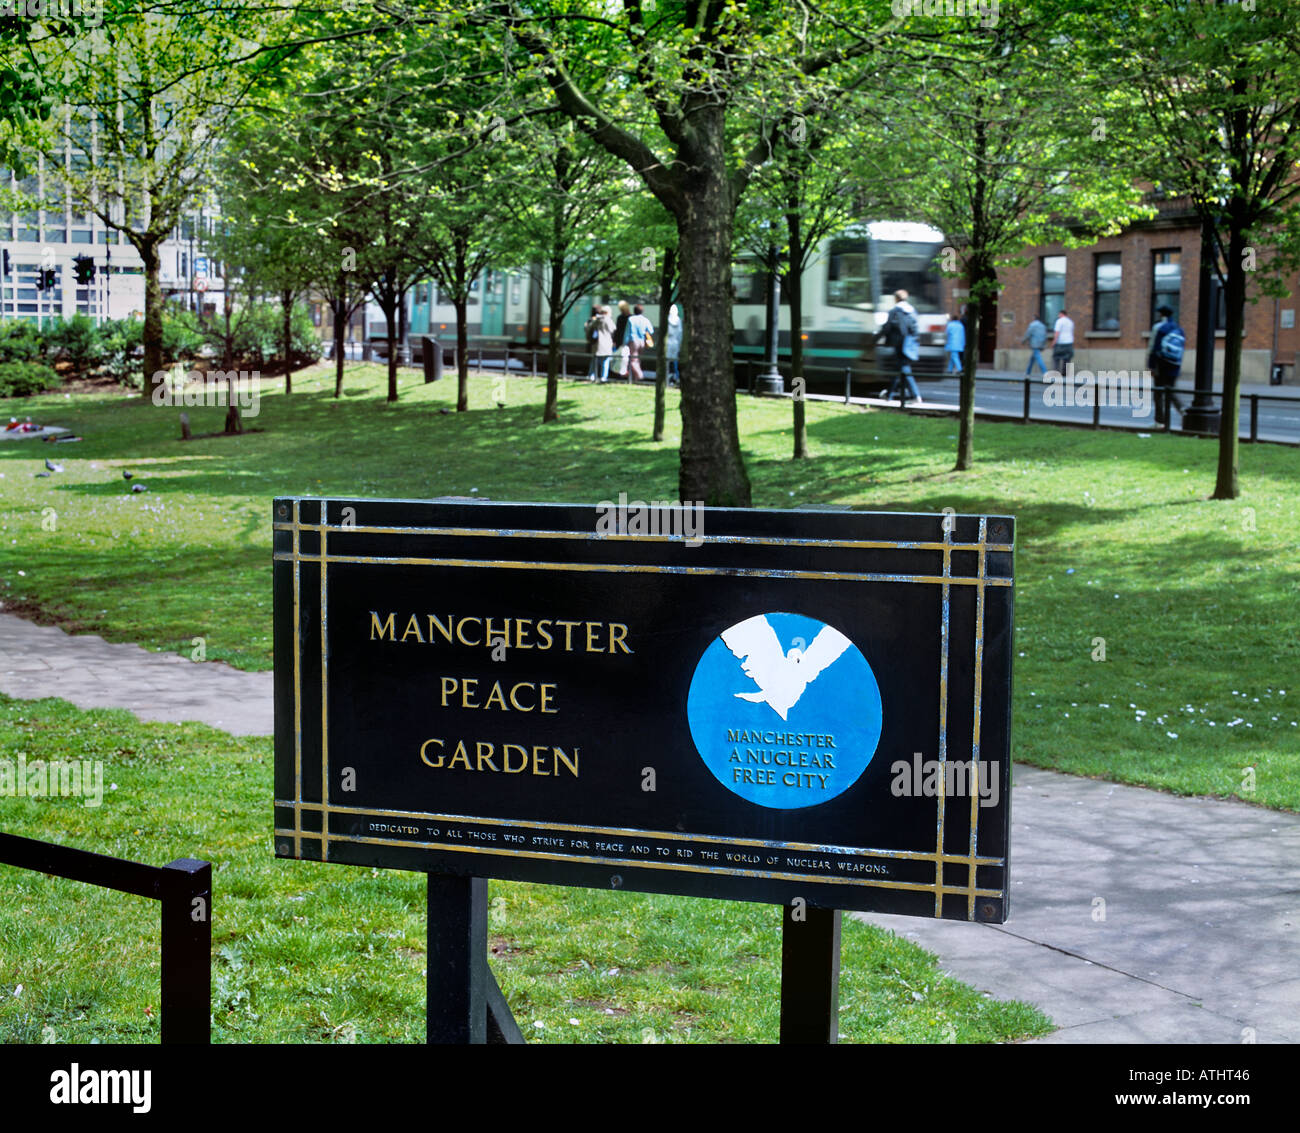 The Nuclear Free Local Authority logo on a sign in Manchester Peace Garden, St Peters Square, Manchester. - Stock Image